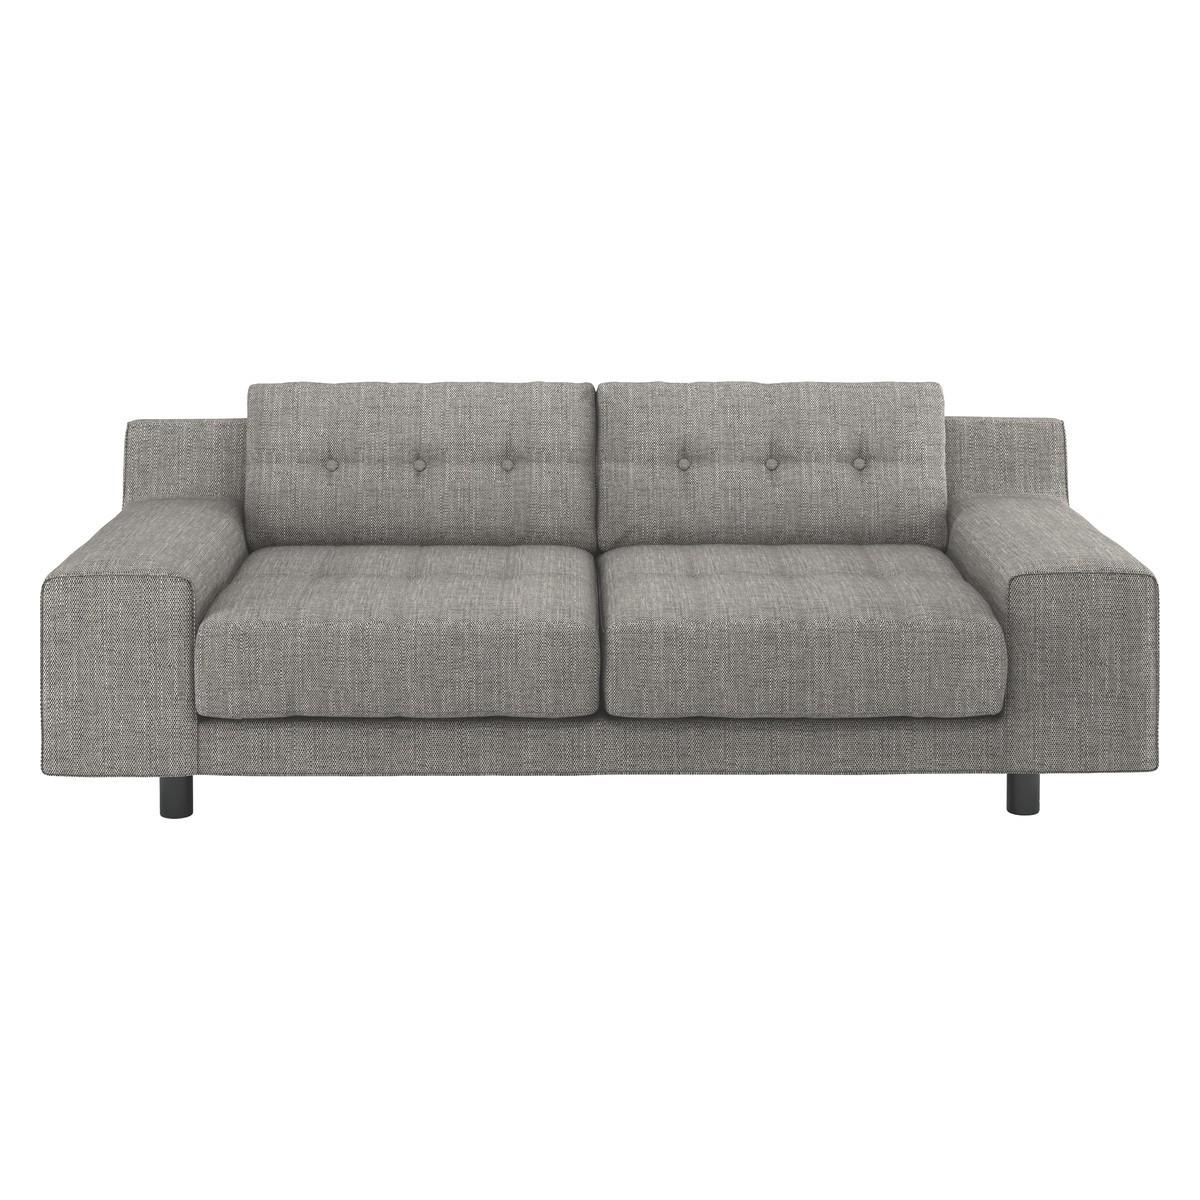 Hendricks Black And White Italian Woven Fabric 2 Seater Sofa | Buy Throughout Black 2 Seater Sofas (Image 11 of 20)